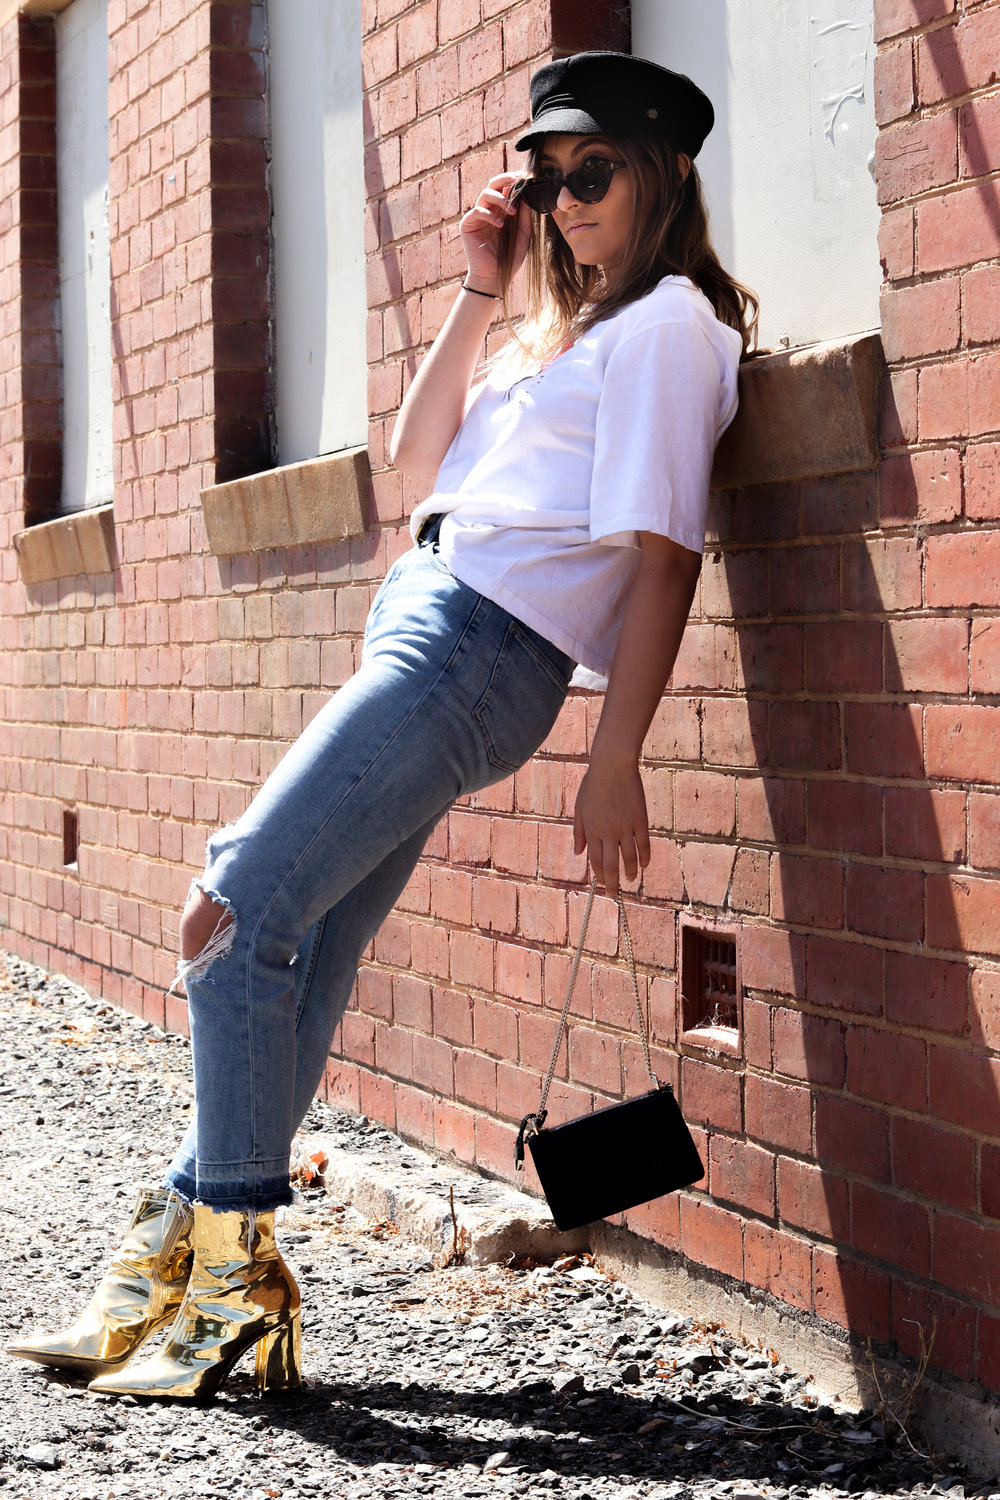 Jeans: Topshop, top: Hello Parry, belt: Gucci, bag: Oroton, shoes: Betts, sunglasses and hat: Rubi.  Model: Yasmin Cinelli